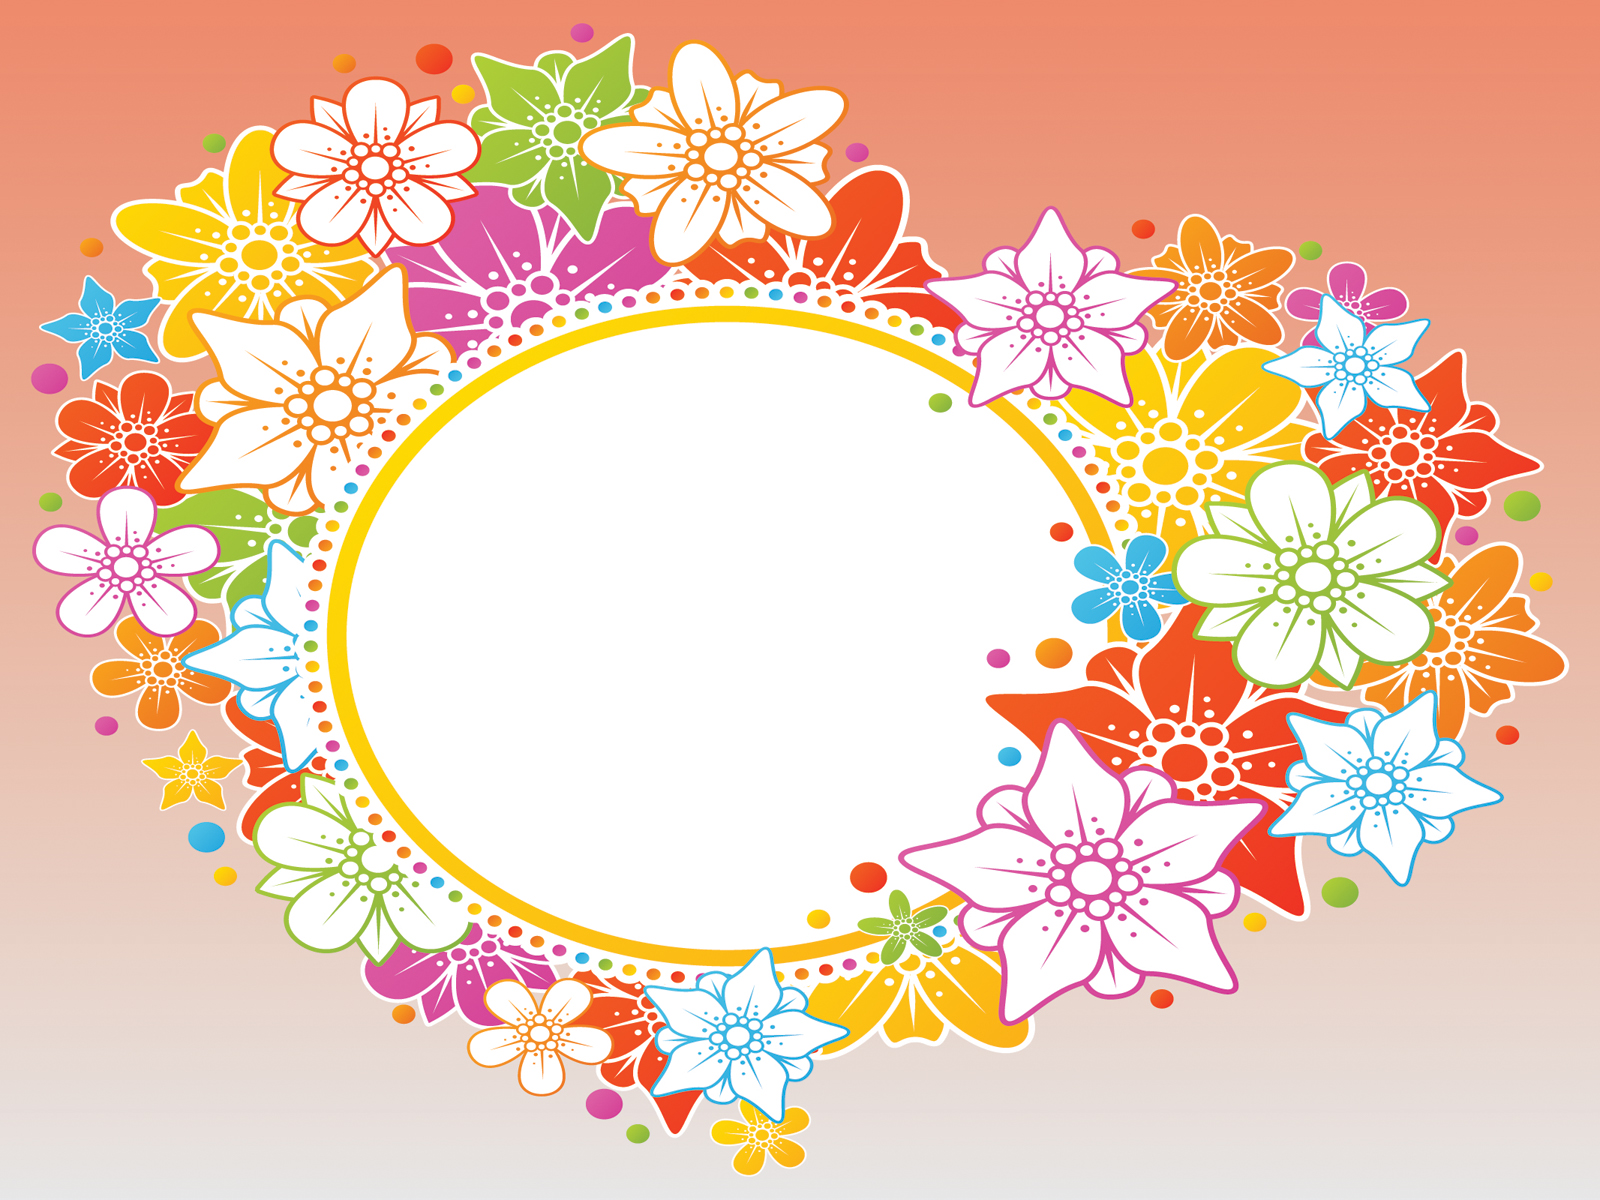 Orange Flowers Presentation Backgrounds